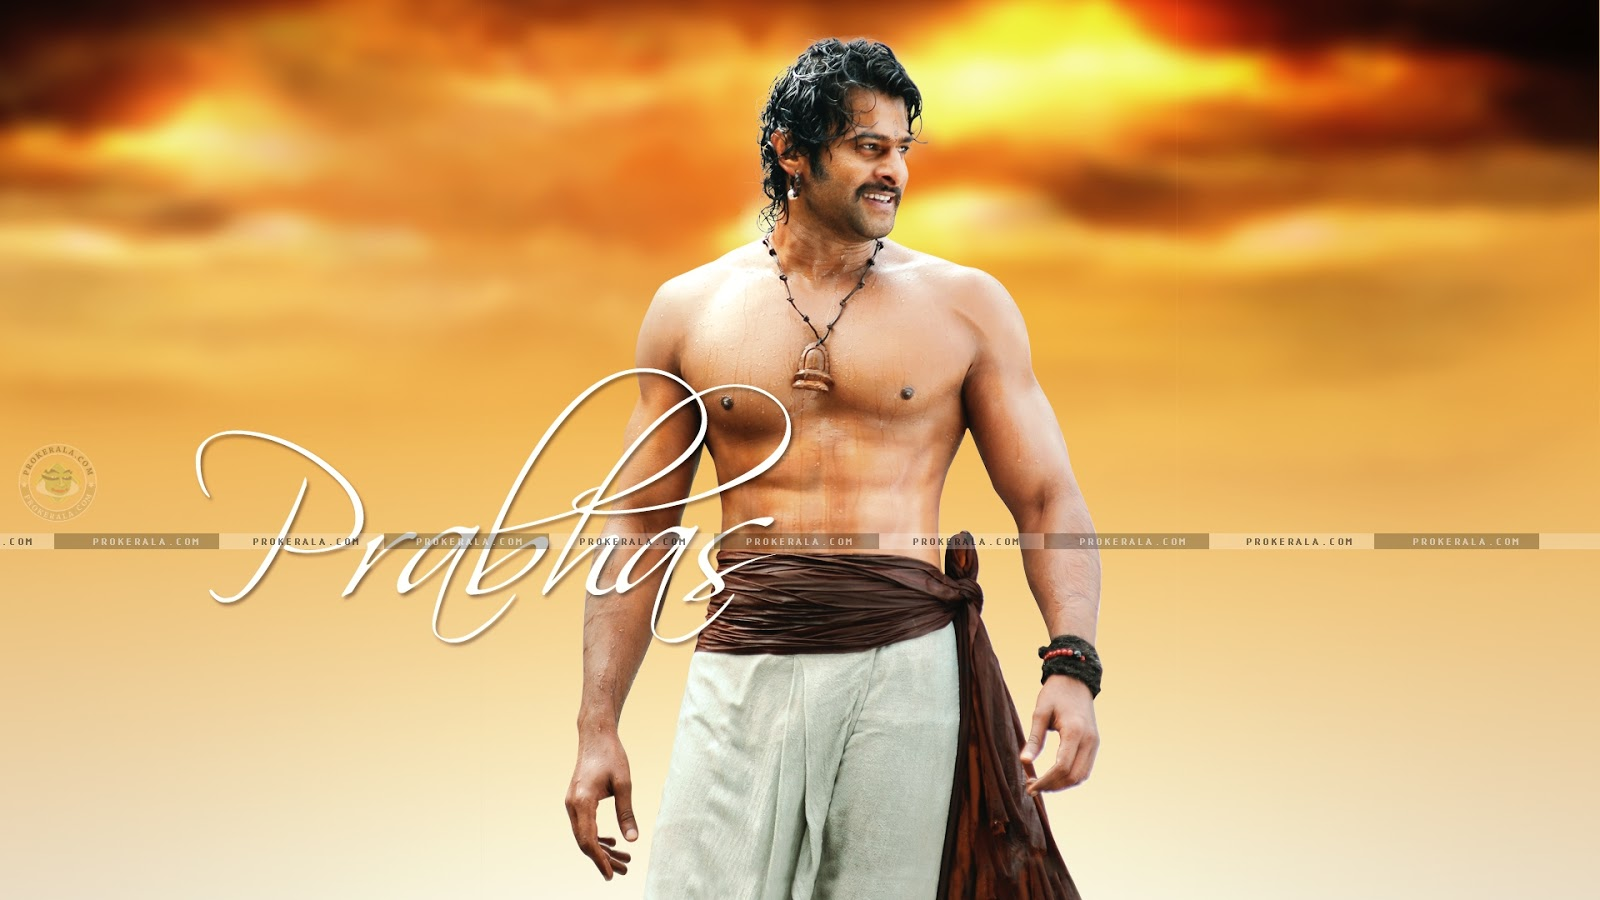 download unseen pics of prabhas - bollywood unseen pics